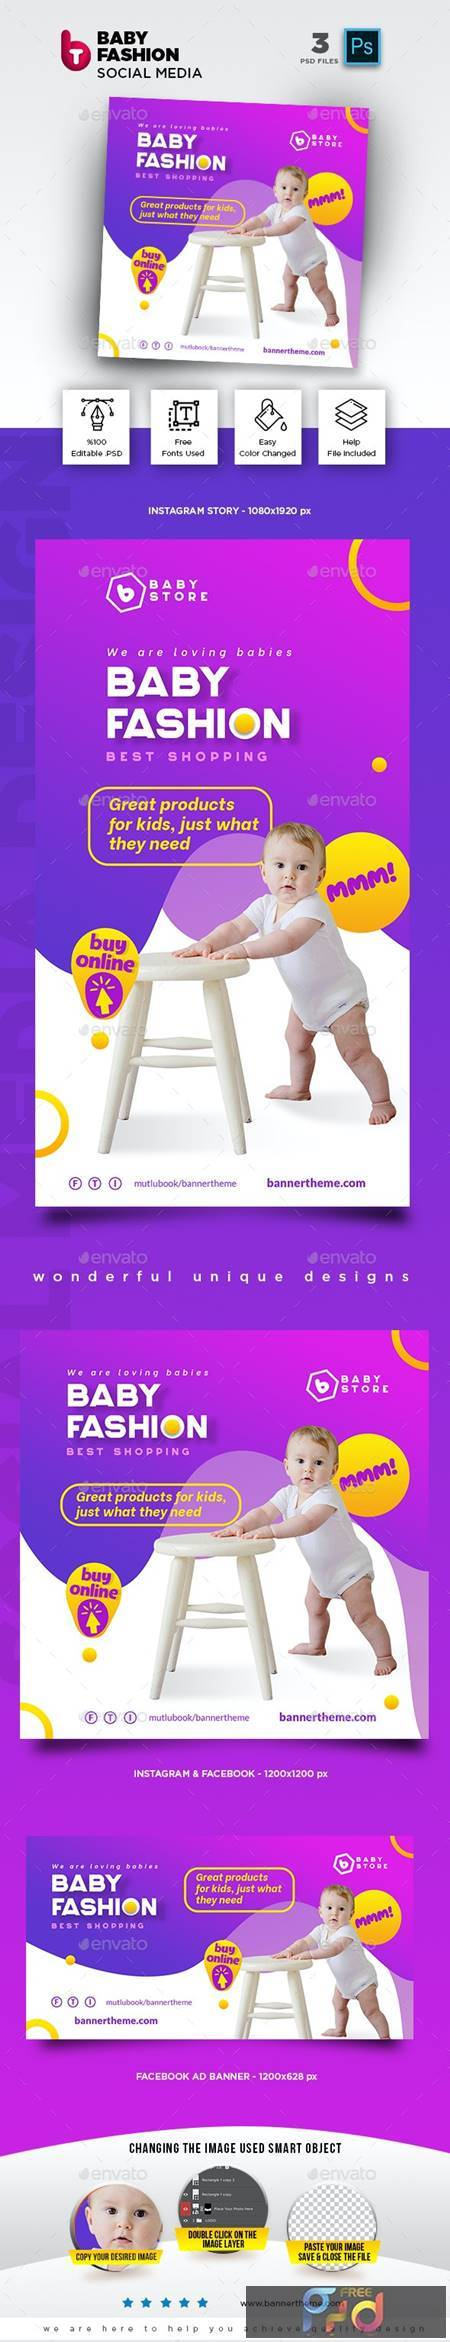 Baby Fashion Social Media Pack 26435839 1